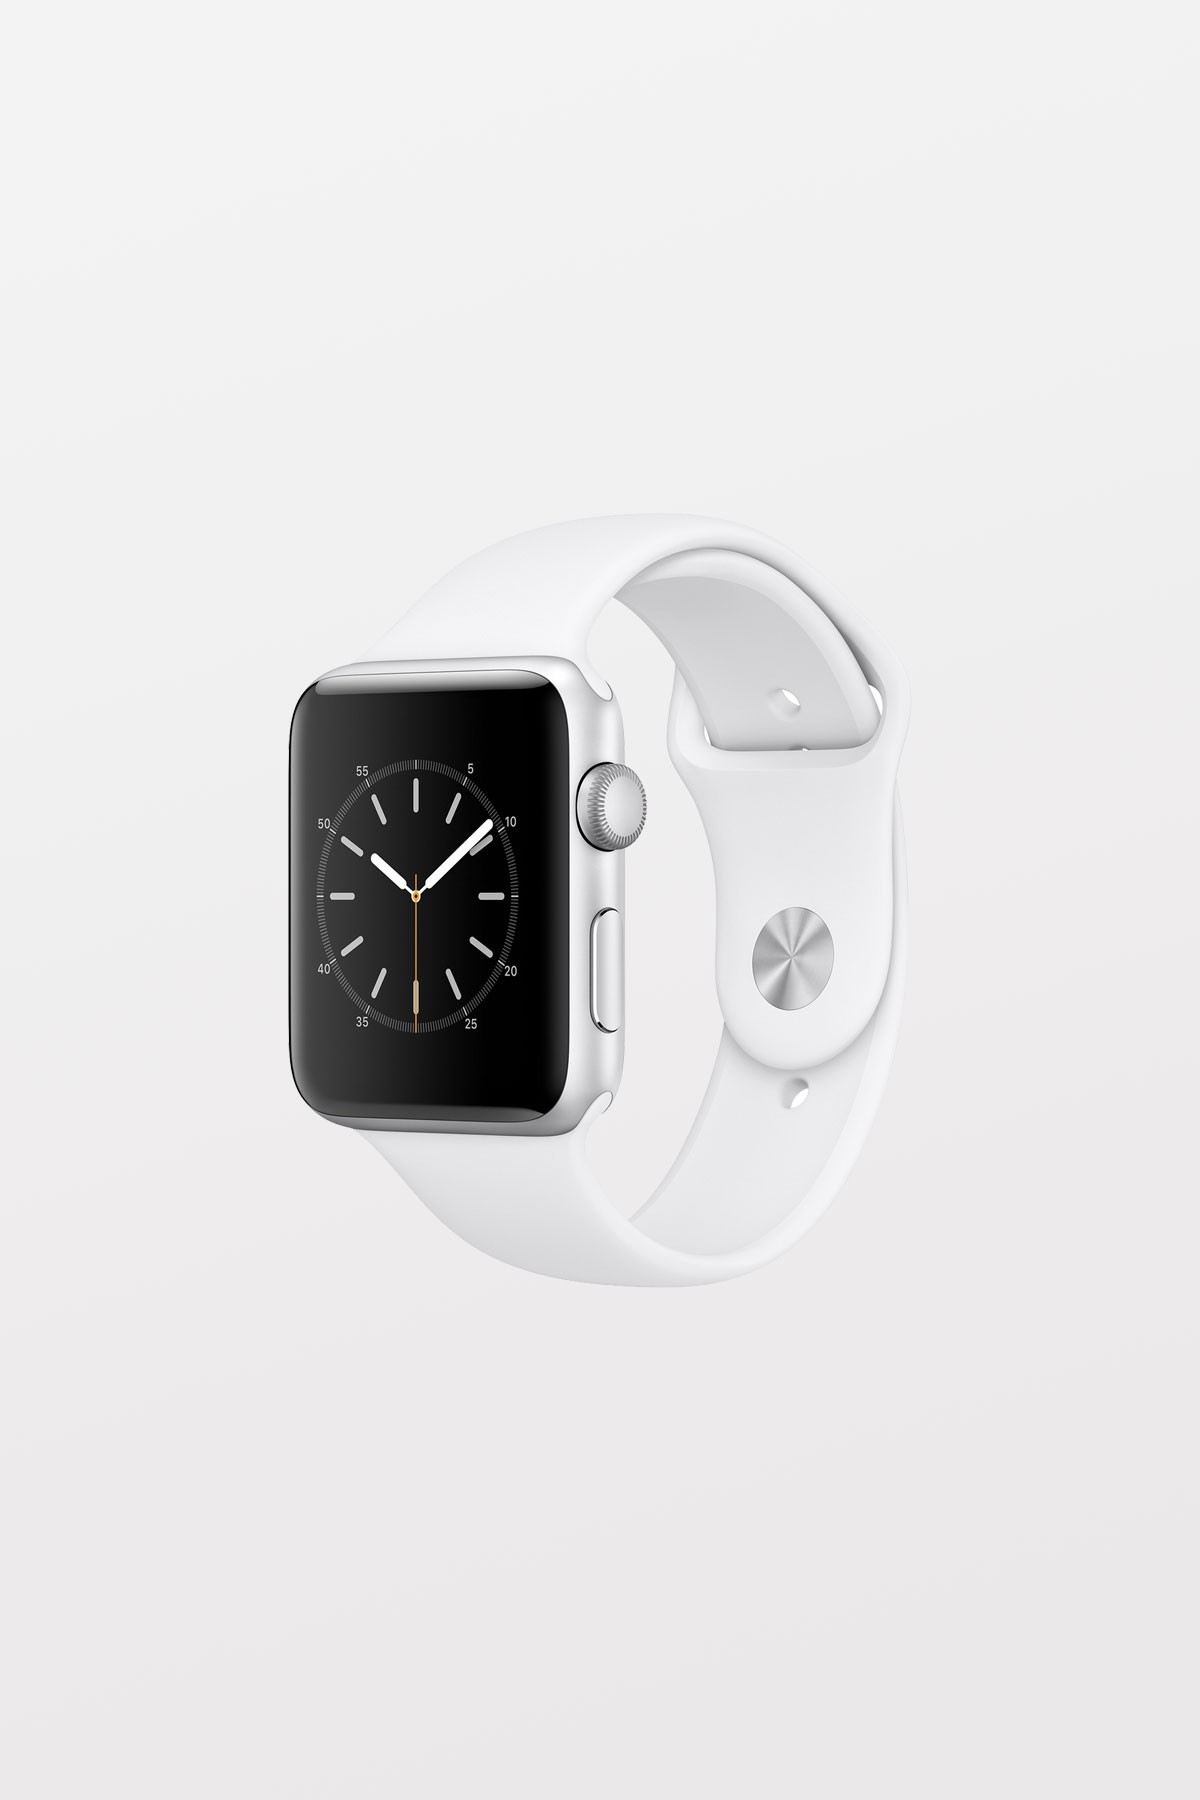 Apple Watch Series 2 - 42mm - Silver Aluminium, White Sport Band - Refurbished